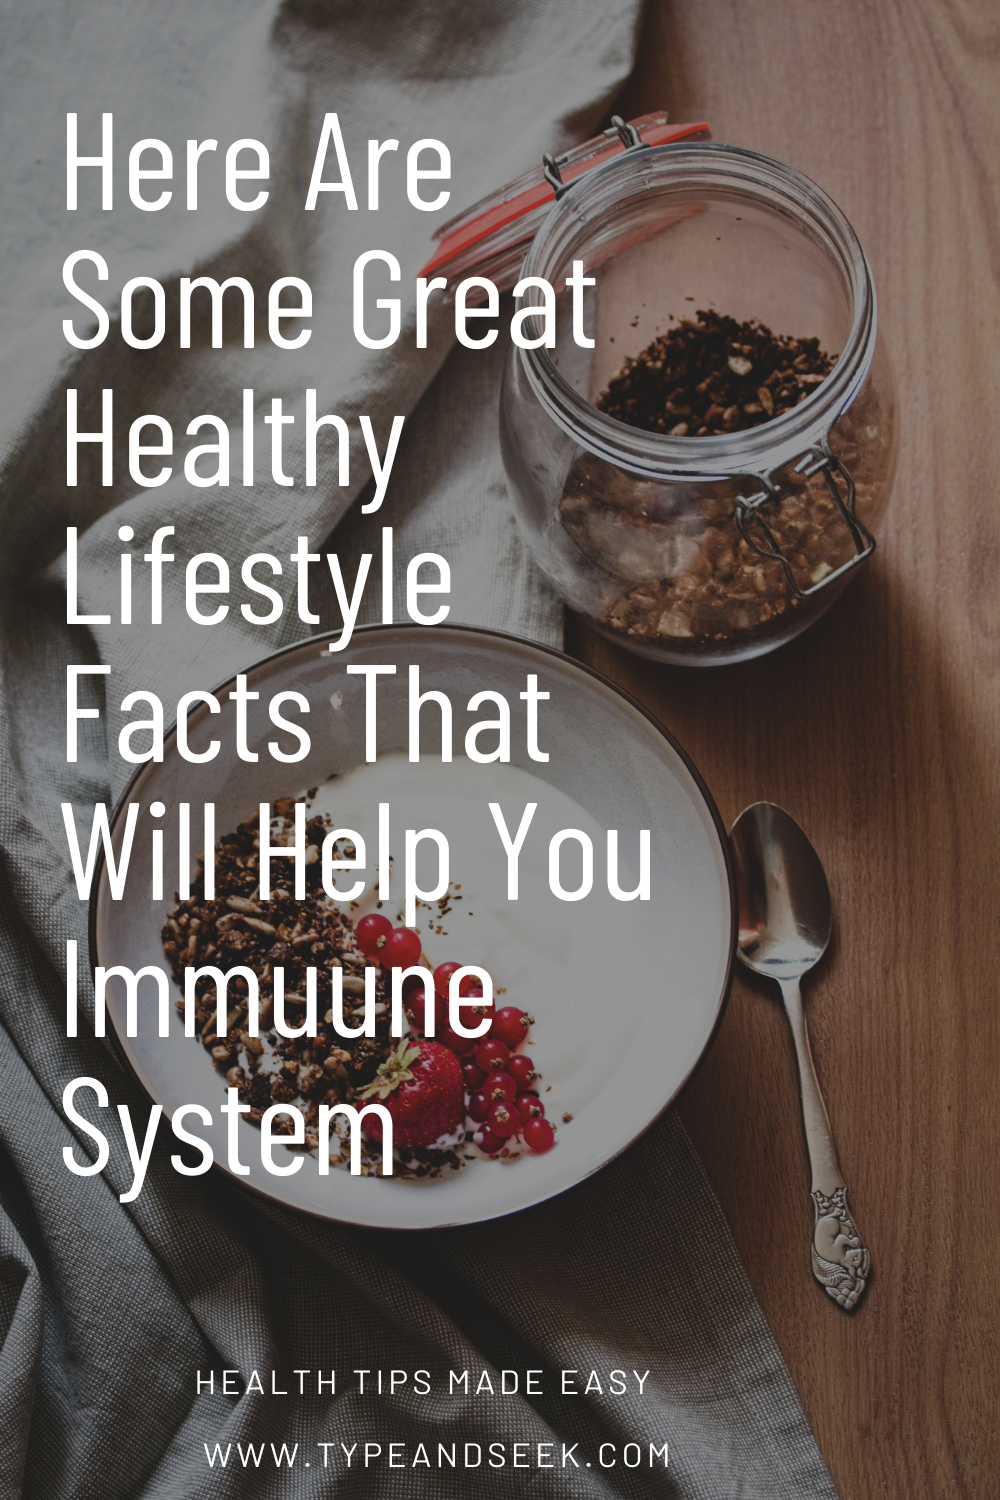 Here Are Some Great Healthy Lifestyle Facts That Will Help You Immuune System - Type and Seek